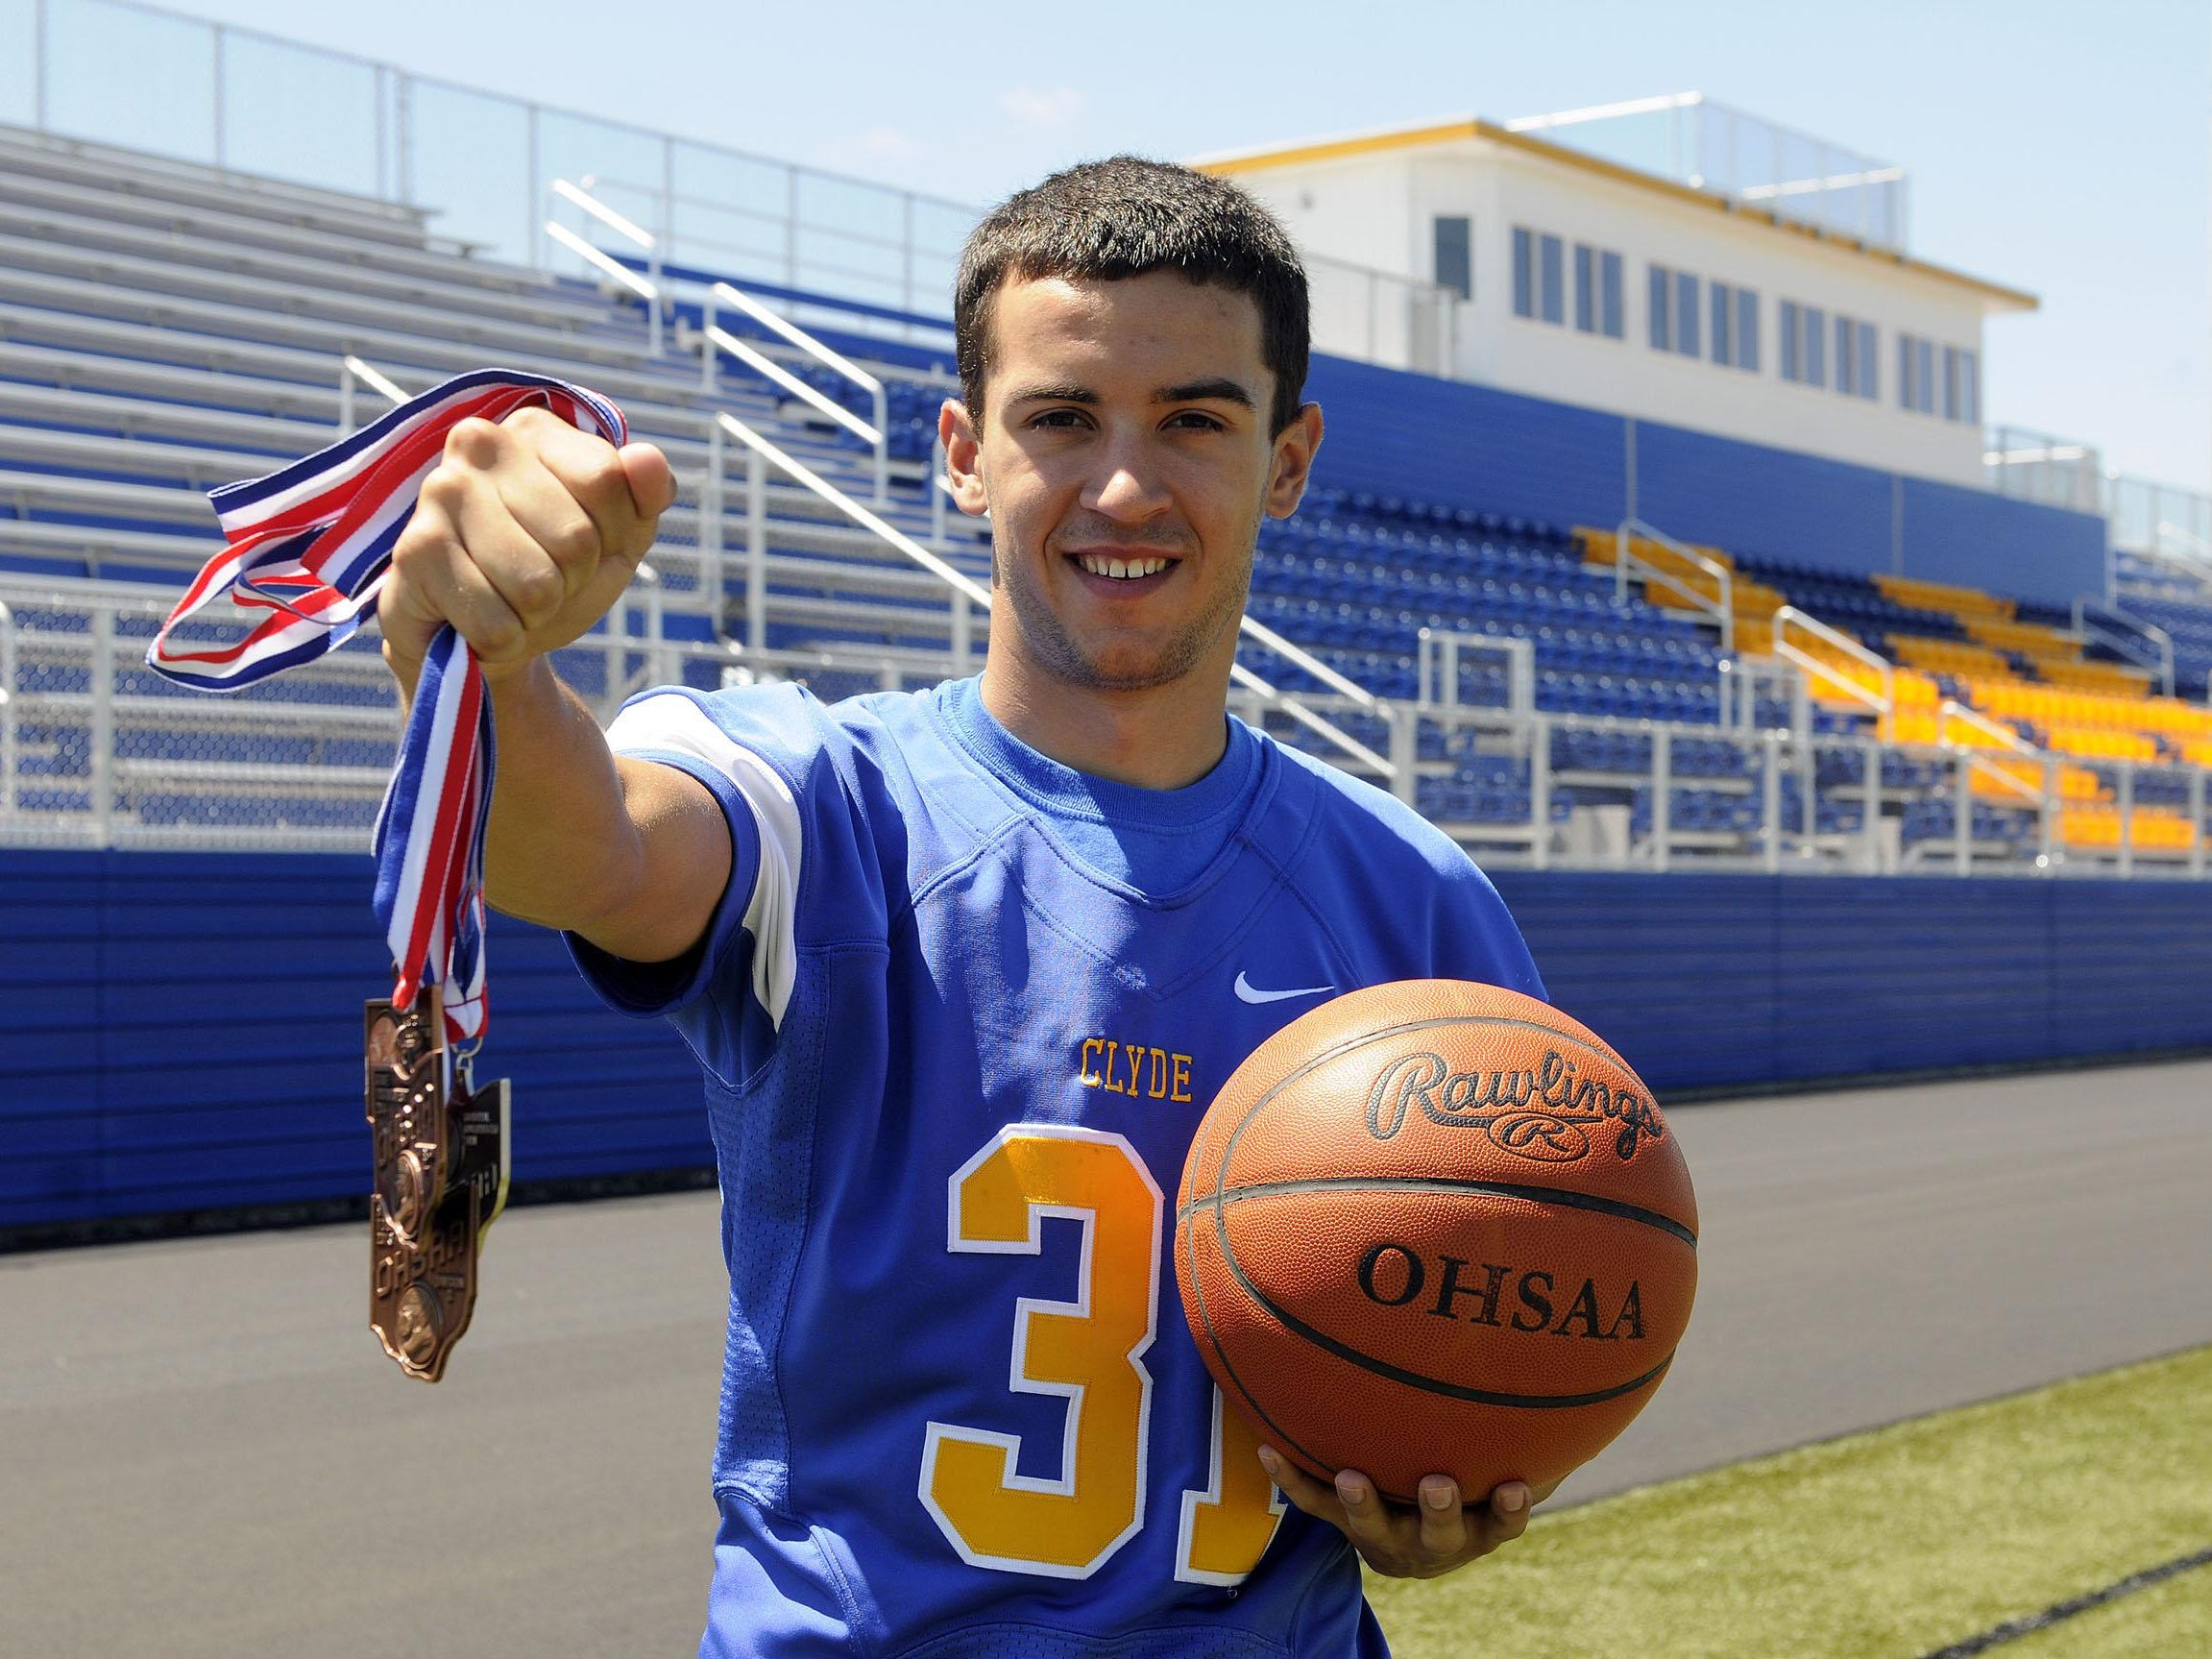 Collin Rieman, a three-sport athlete who excelled at football, basketball and ran track for Clyde High School, is a News-Messenger Michael Bosi Award winner.